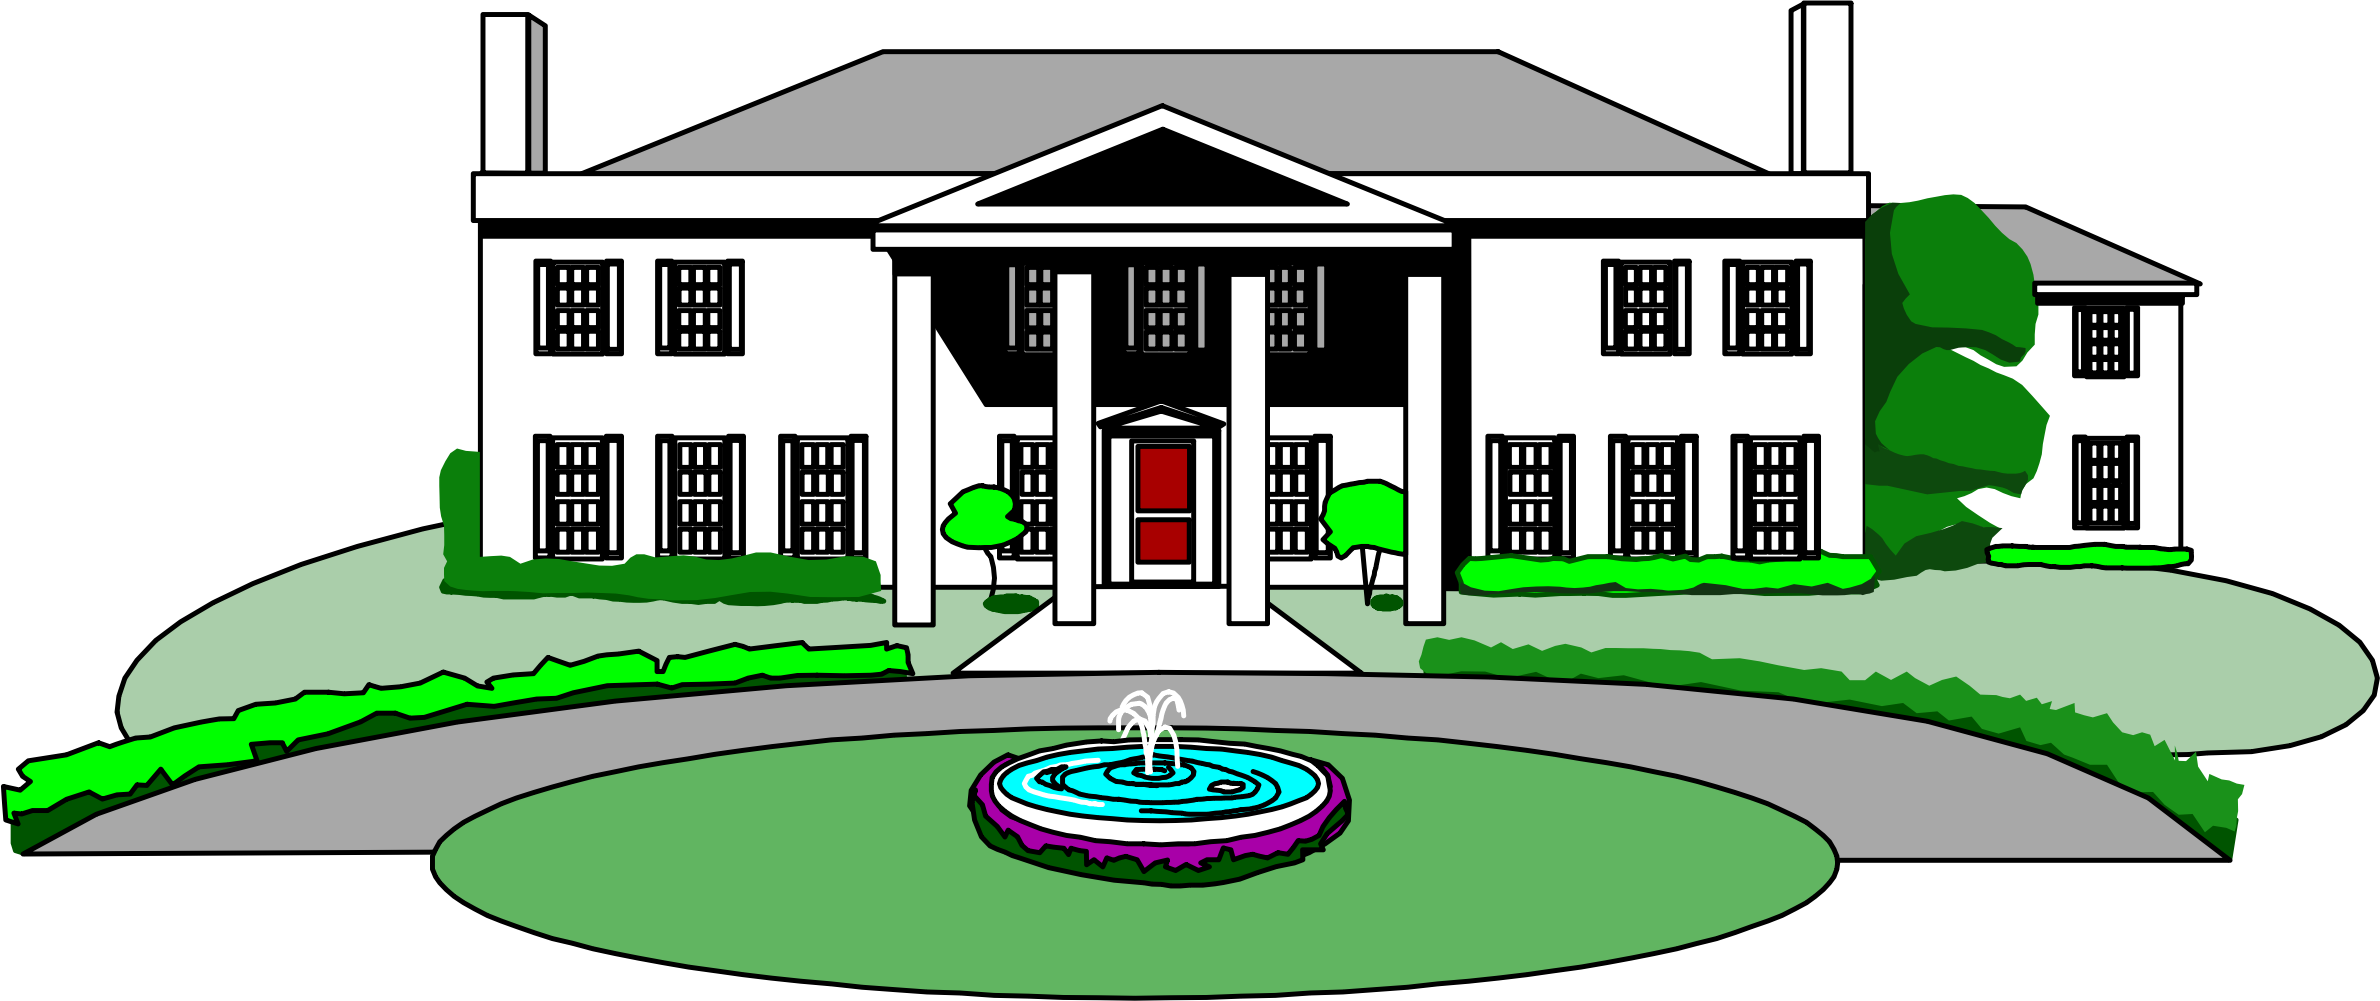 Cool clipart mansion. Big image png